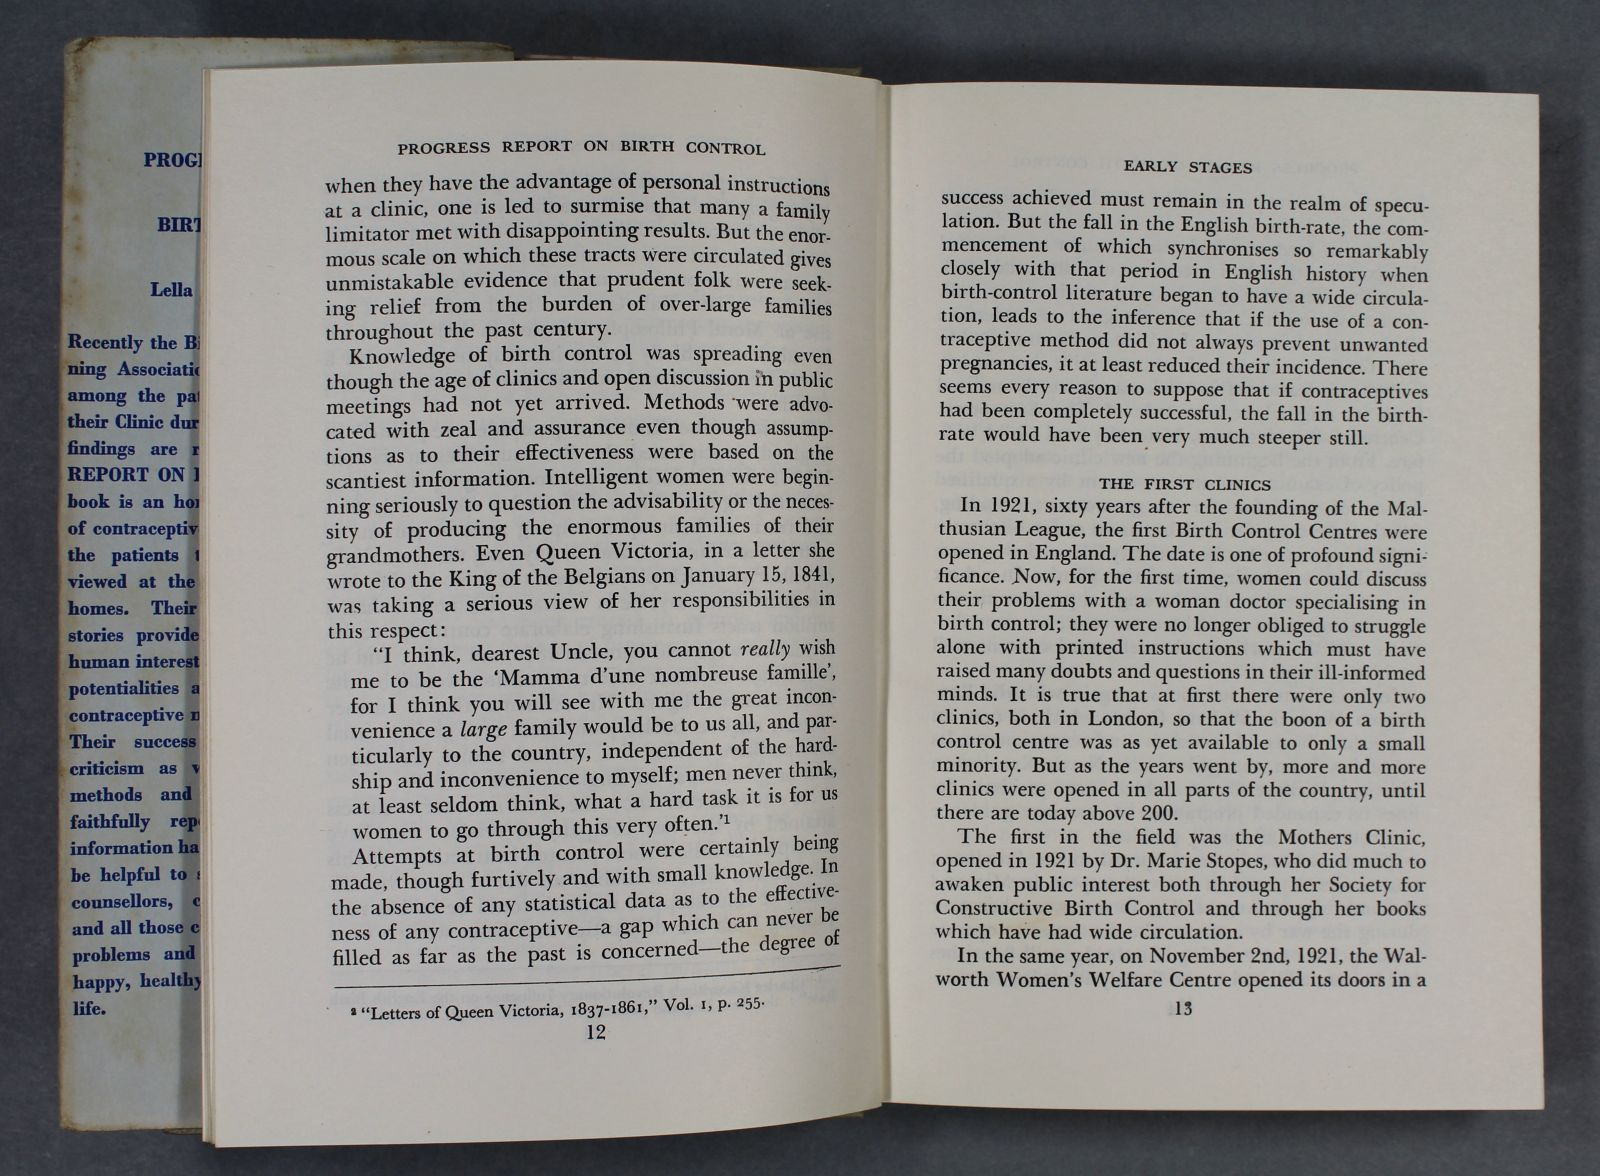 """The open pages of a book showing black text on white pages. A heading reading, """"The First Clinics"""", is visible on the right-hand page."""